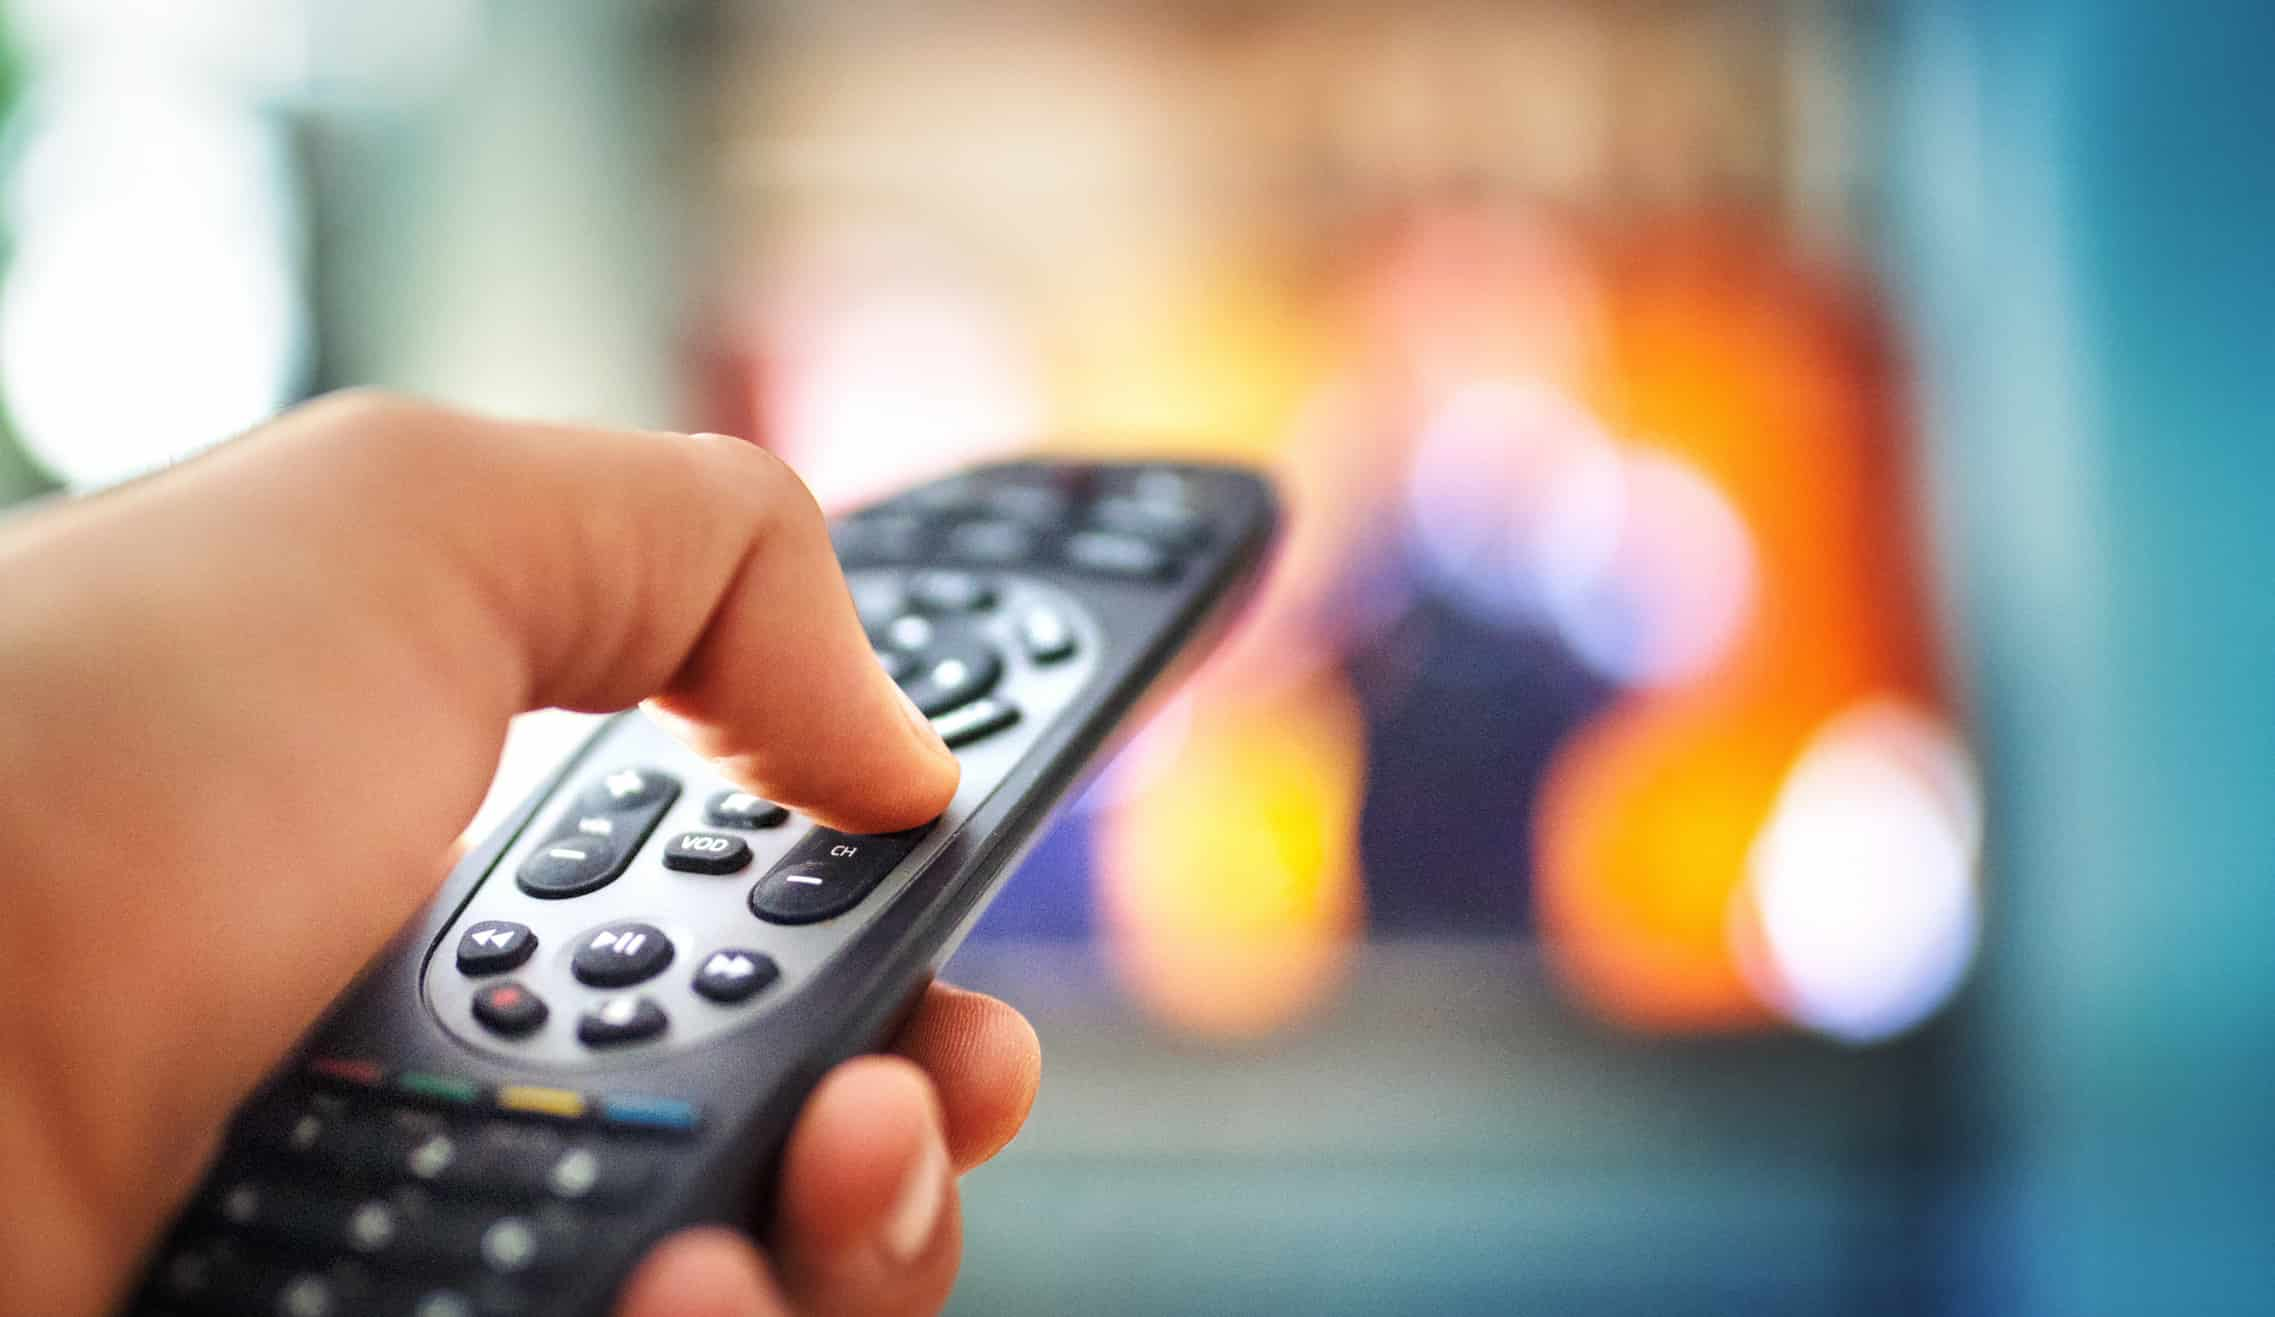 A person holding a TV remote with a blurred TV in the background